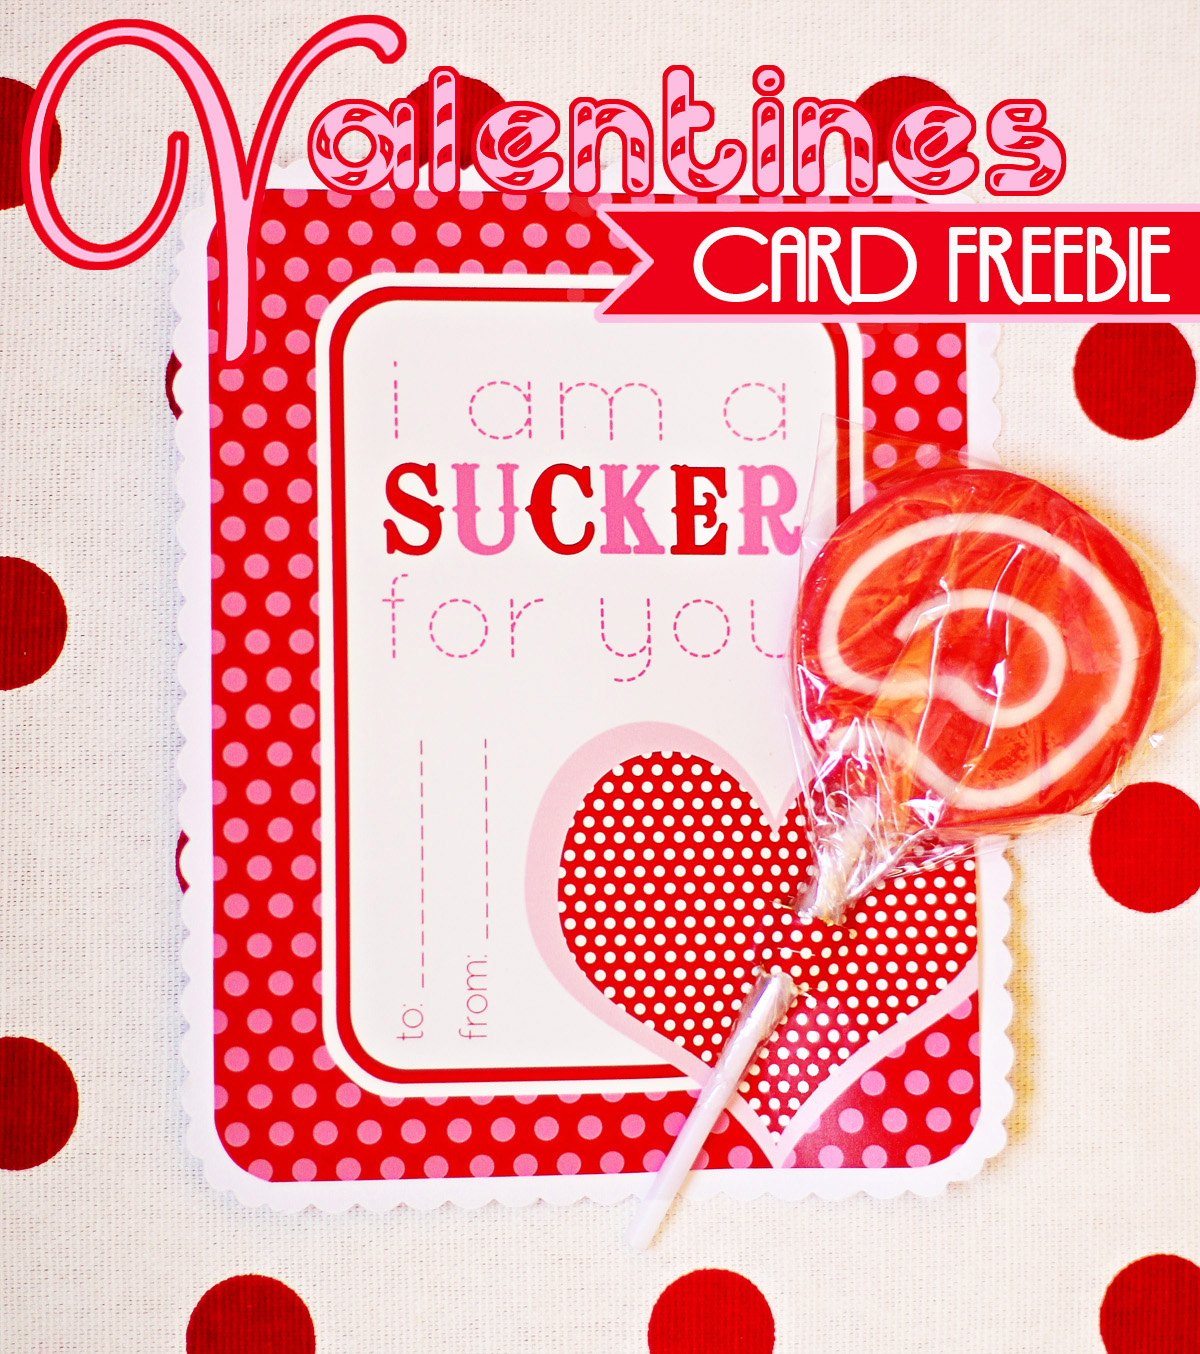 FREEBIE Valentine QuotSucker For Youquot Card. 1200 x 1354.Free Valentine's Day Card Download